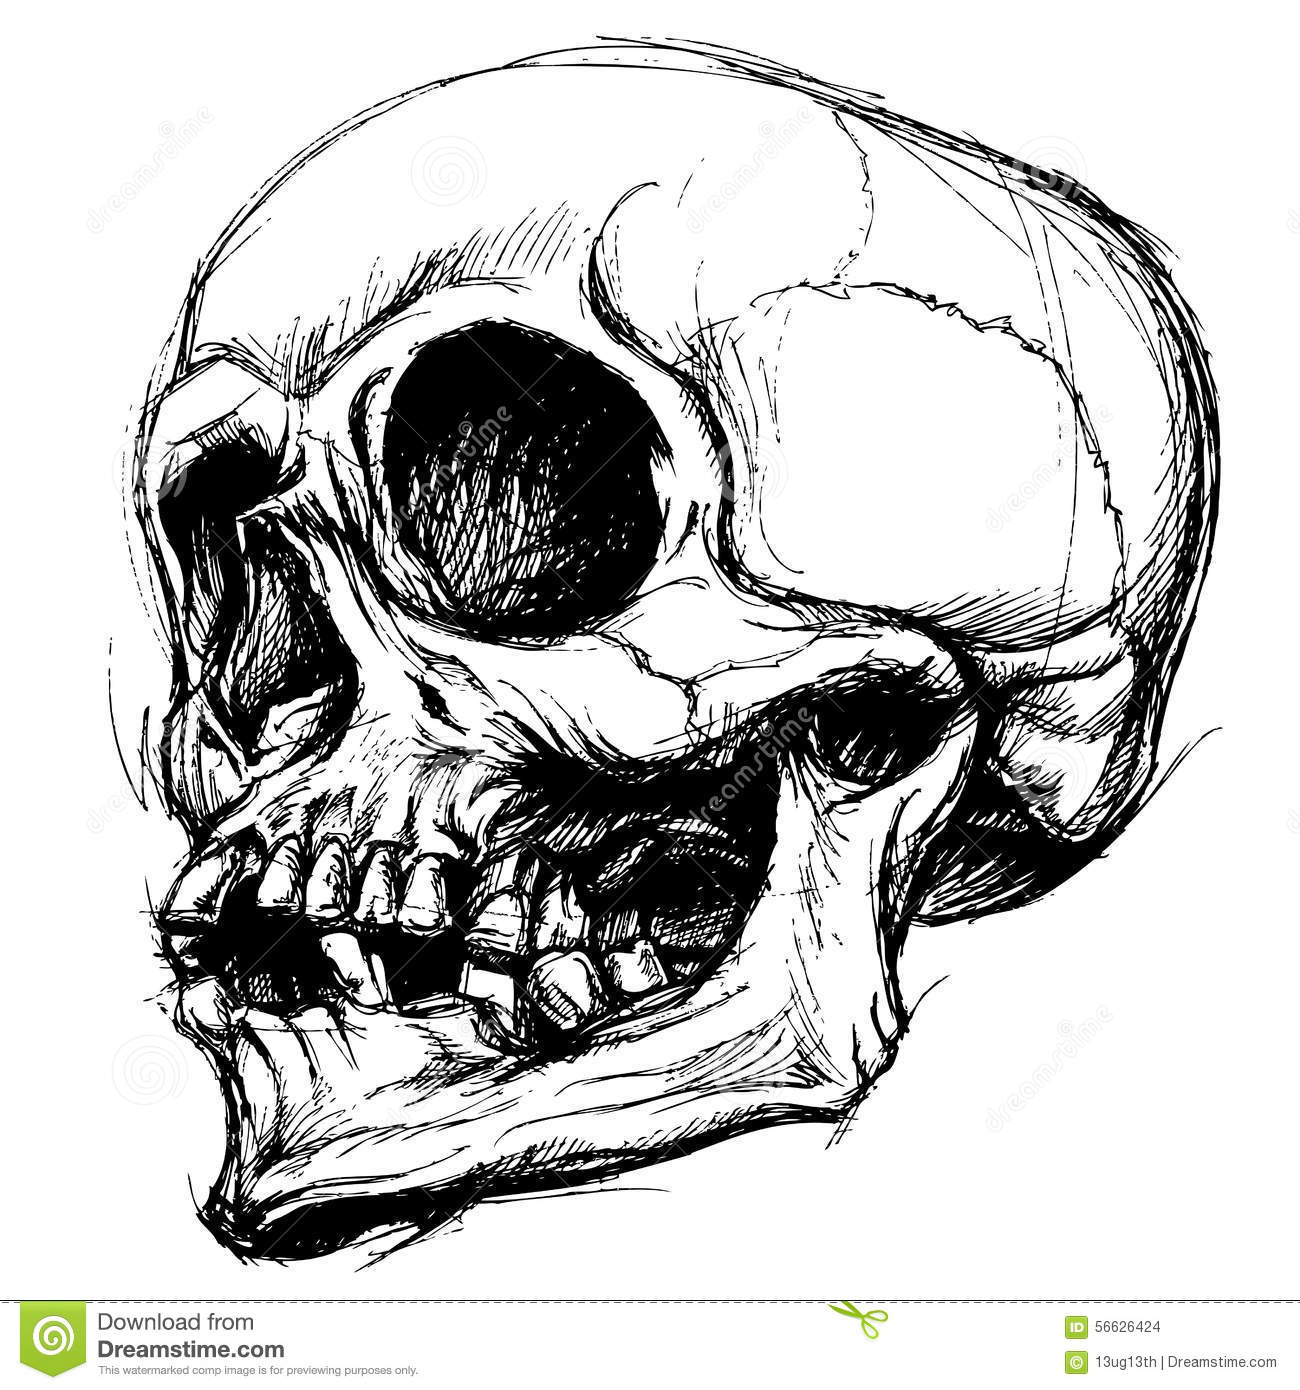 0b6de075b5d6547e besides Demon Skull Drawing also Black And White Octopus Drawing furthermore Pig Smell Something Nice Coloring Page likewise Stock Illustration Skull Drawing Line Work Vector Traditional Use Image56626424. on scary animal skull